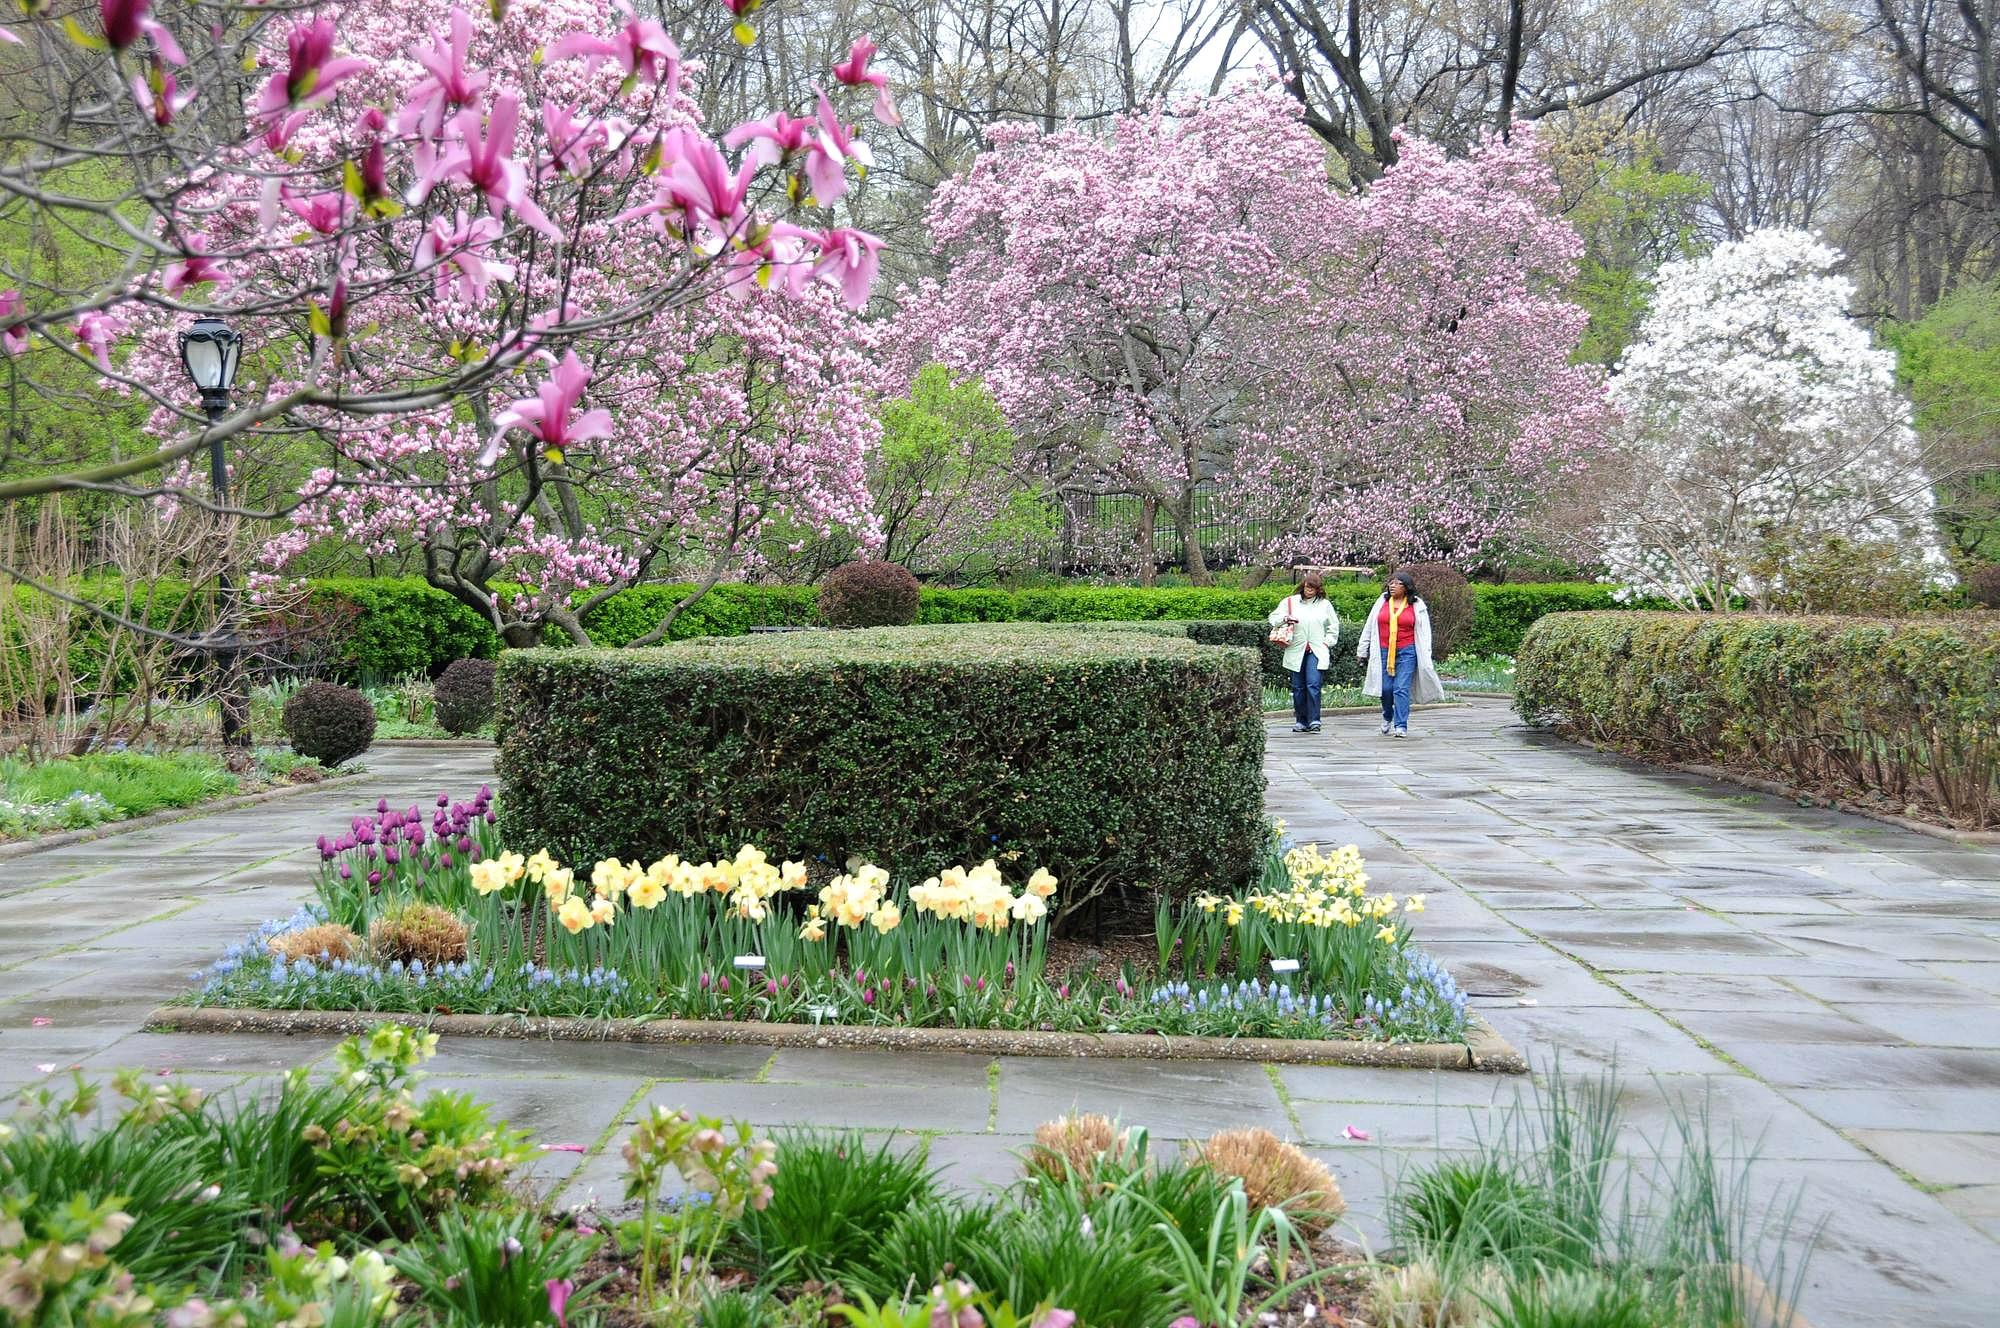 Central Park Conservatory Garden, Central Park Conservancy